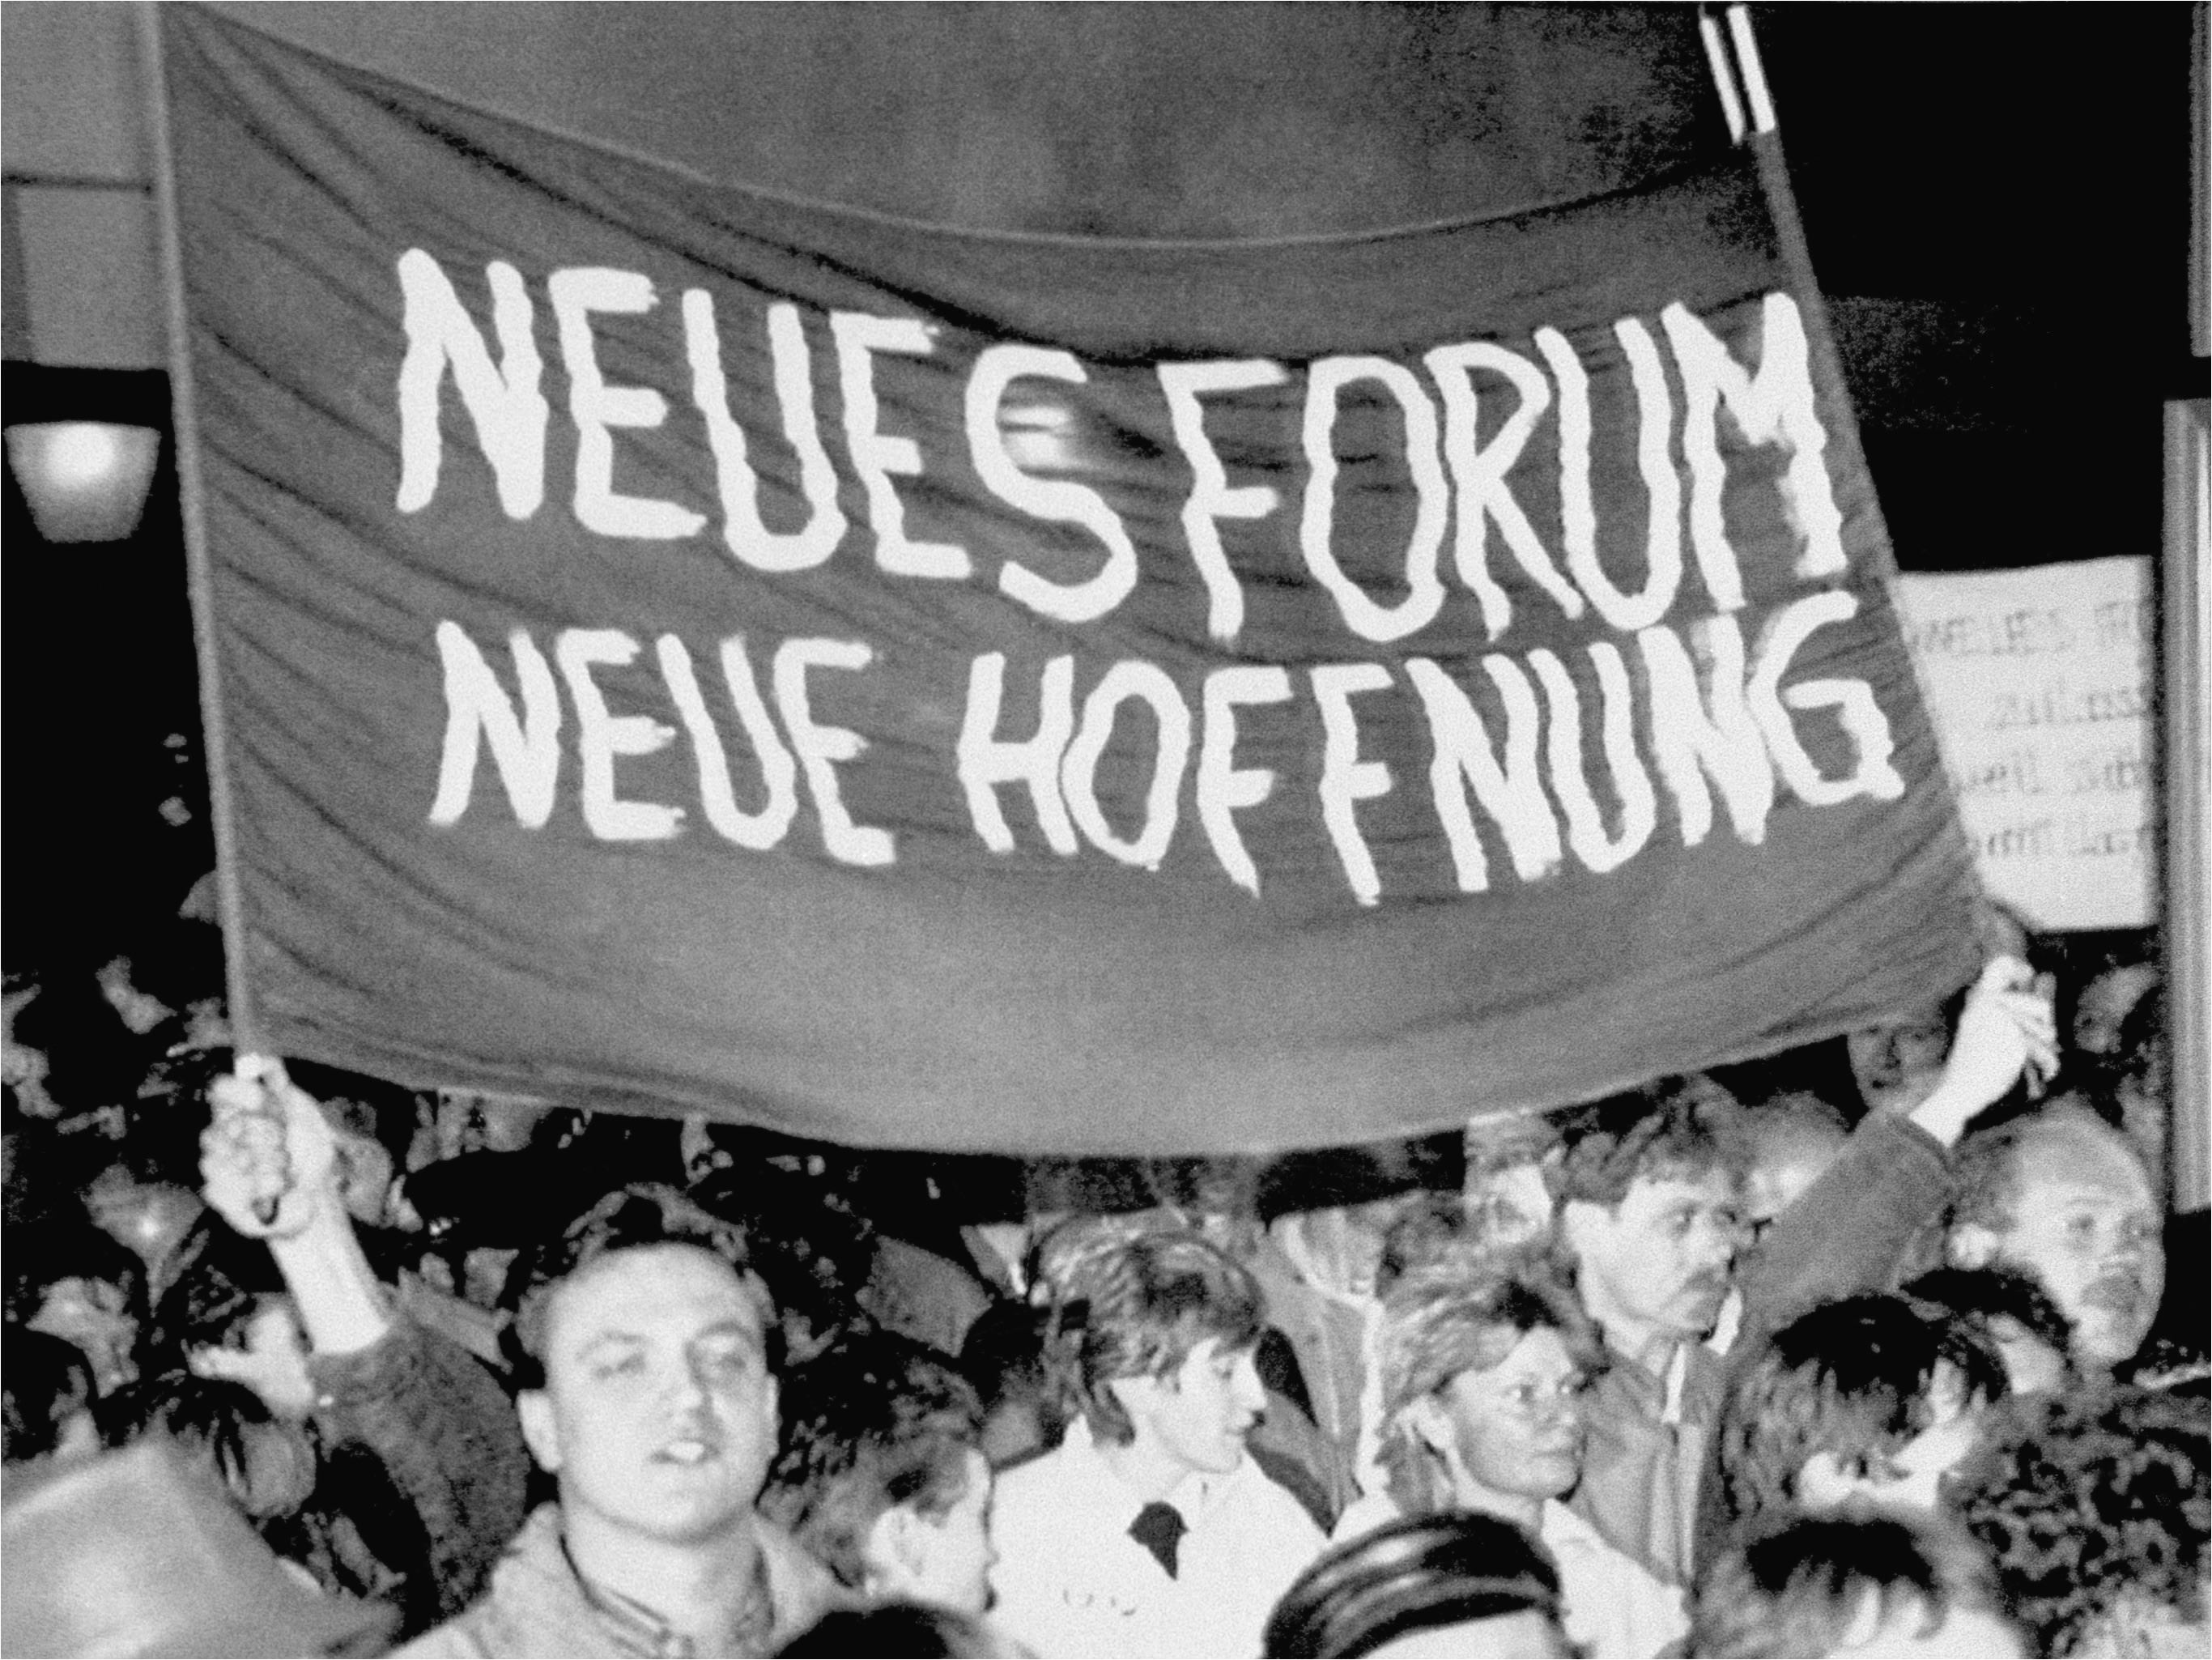 Monday demonstration in Leipzig, East Germany